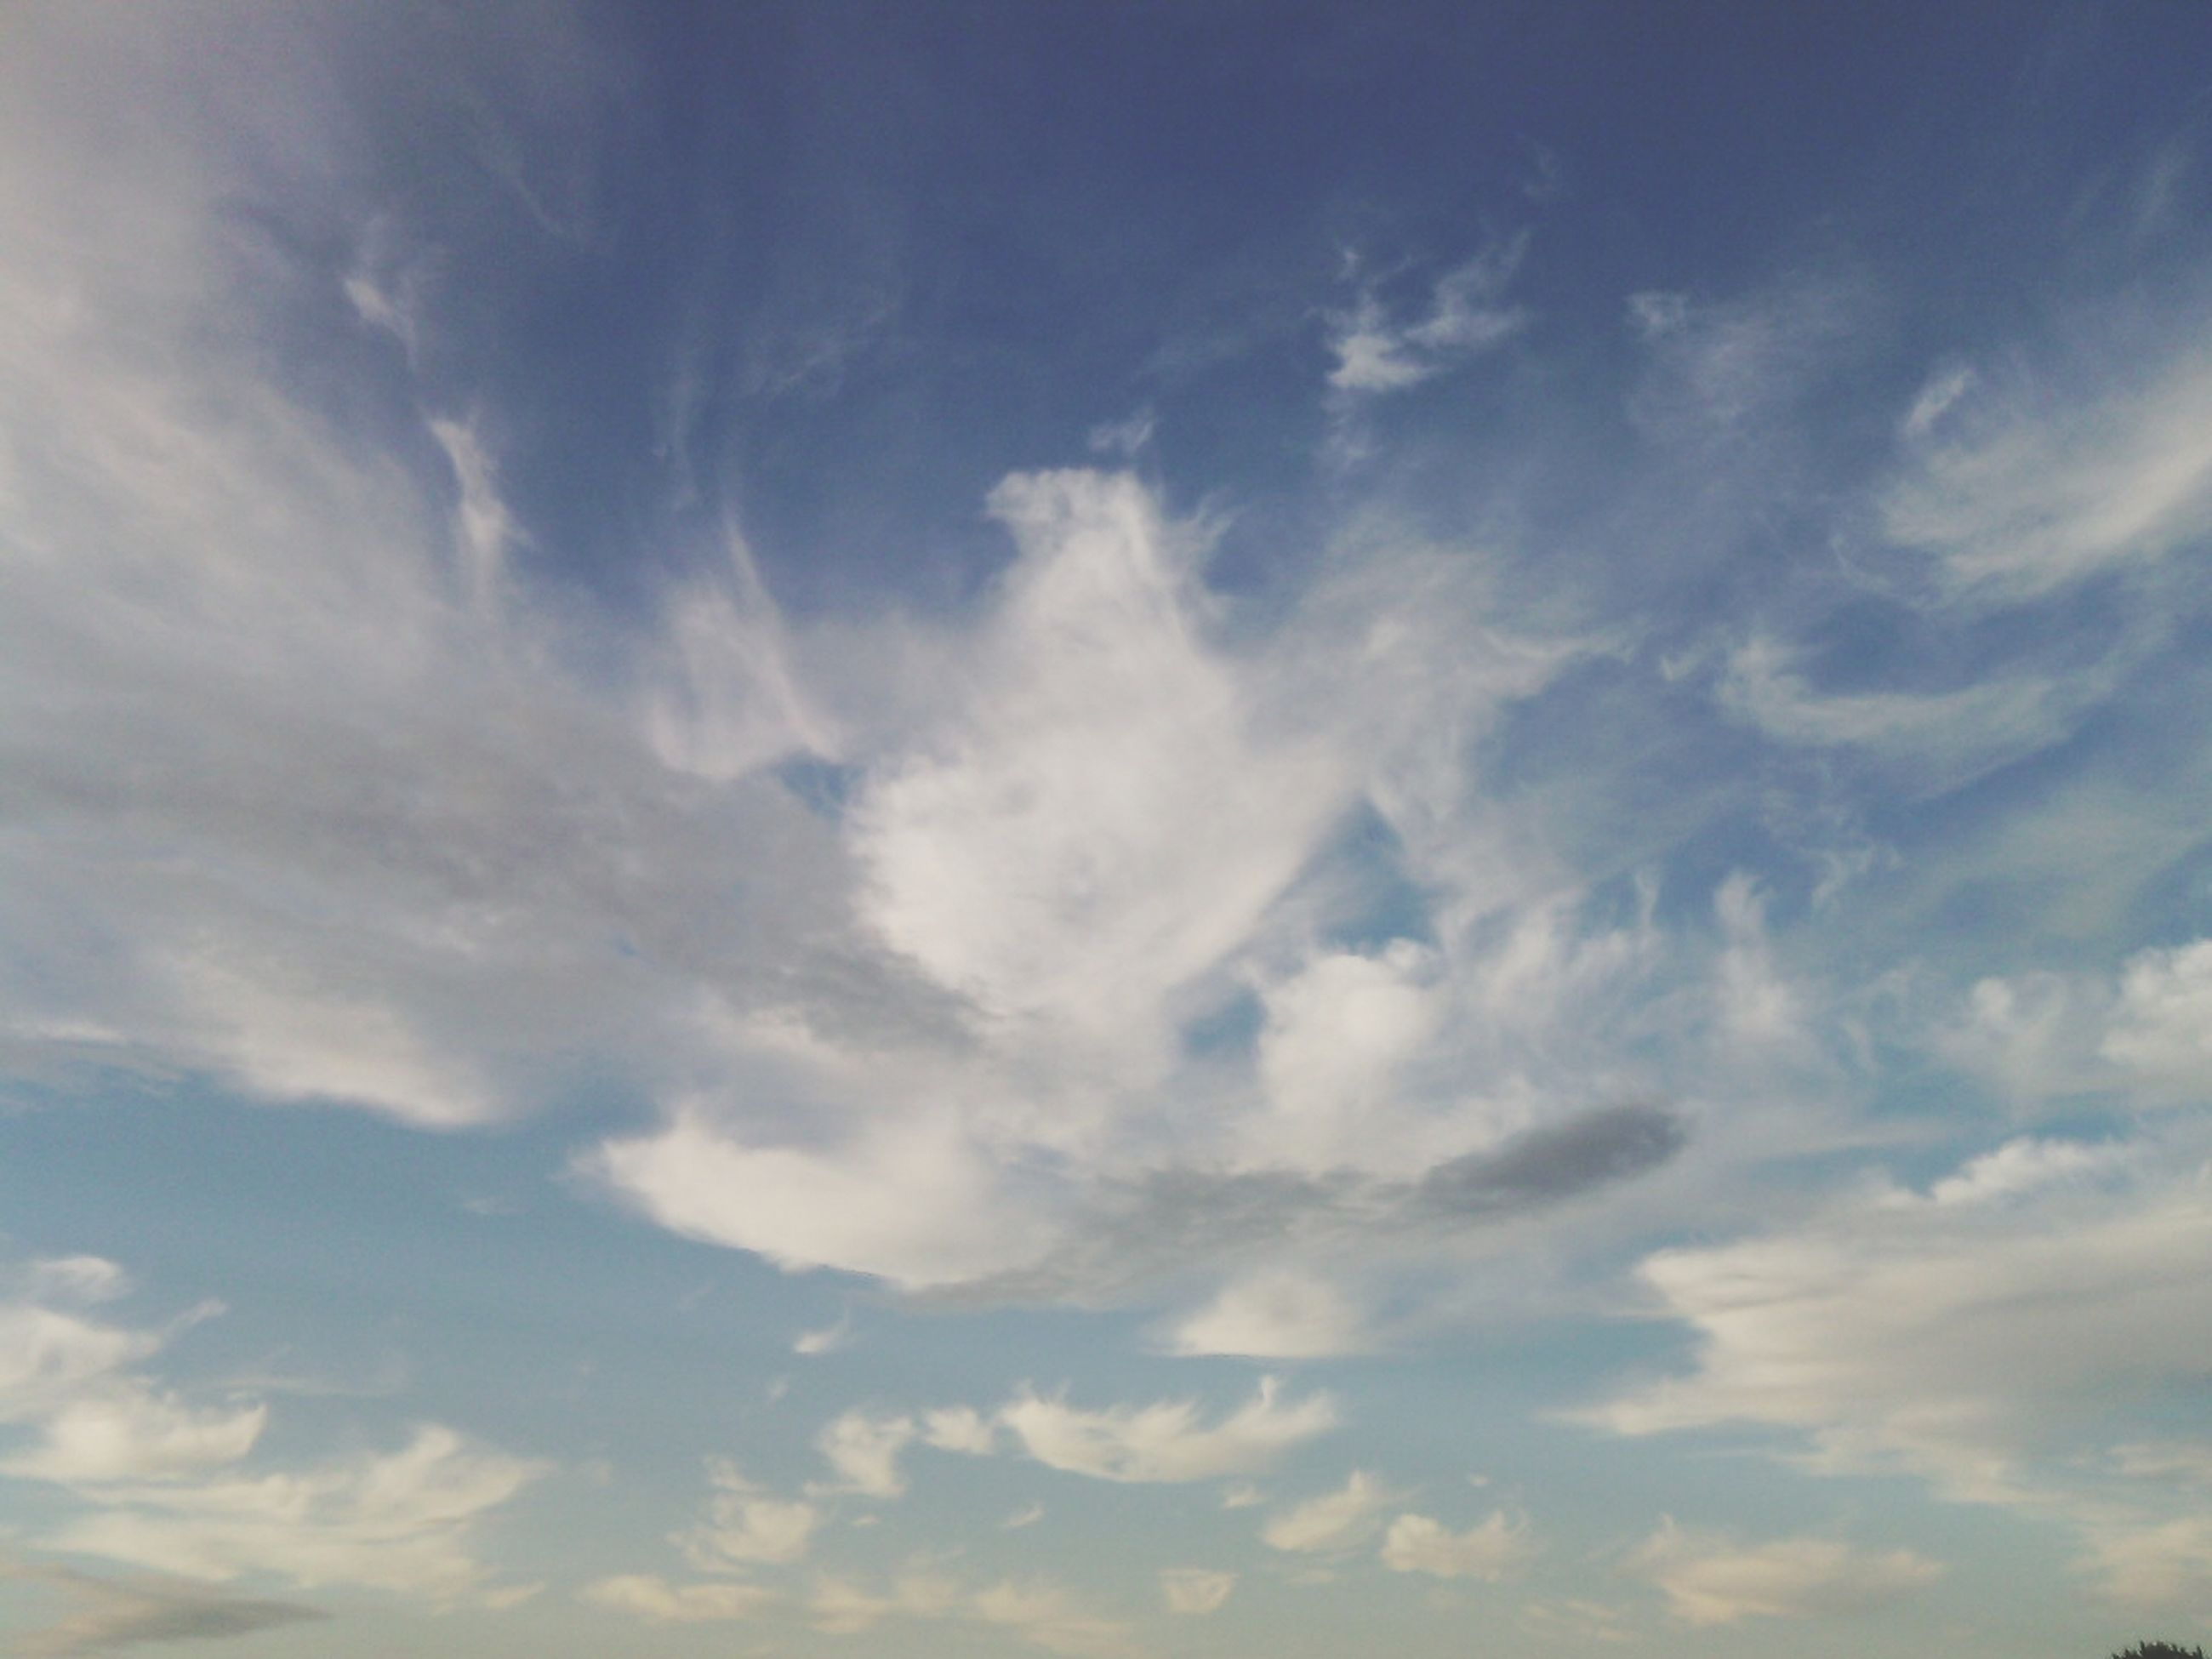 sky, cloud - sky, tranquility, beauty in nature, scenics, low angle view, sky only, tranquil scene, cloudy, nature, backgrounds, cloudscape, full frame, cloud, idyllic, outdoors, blue, no people, day, weather